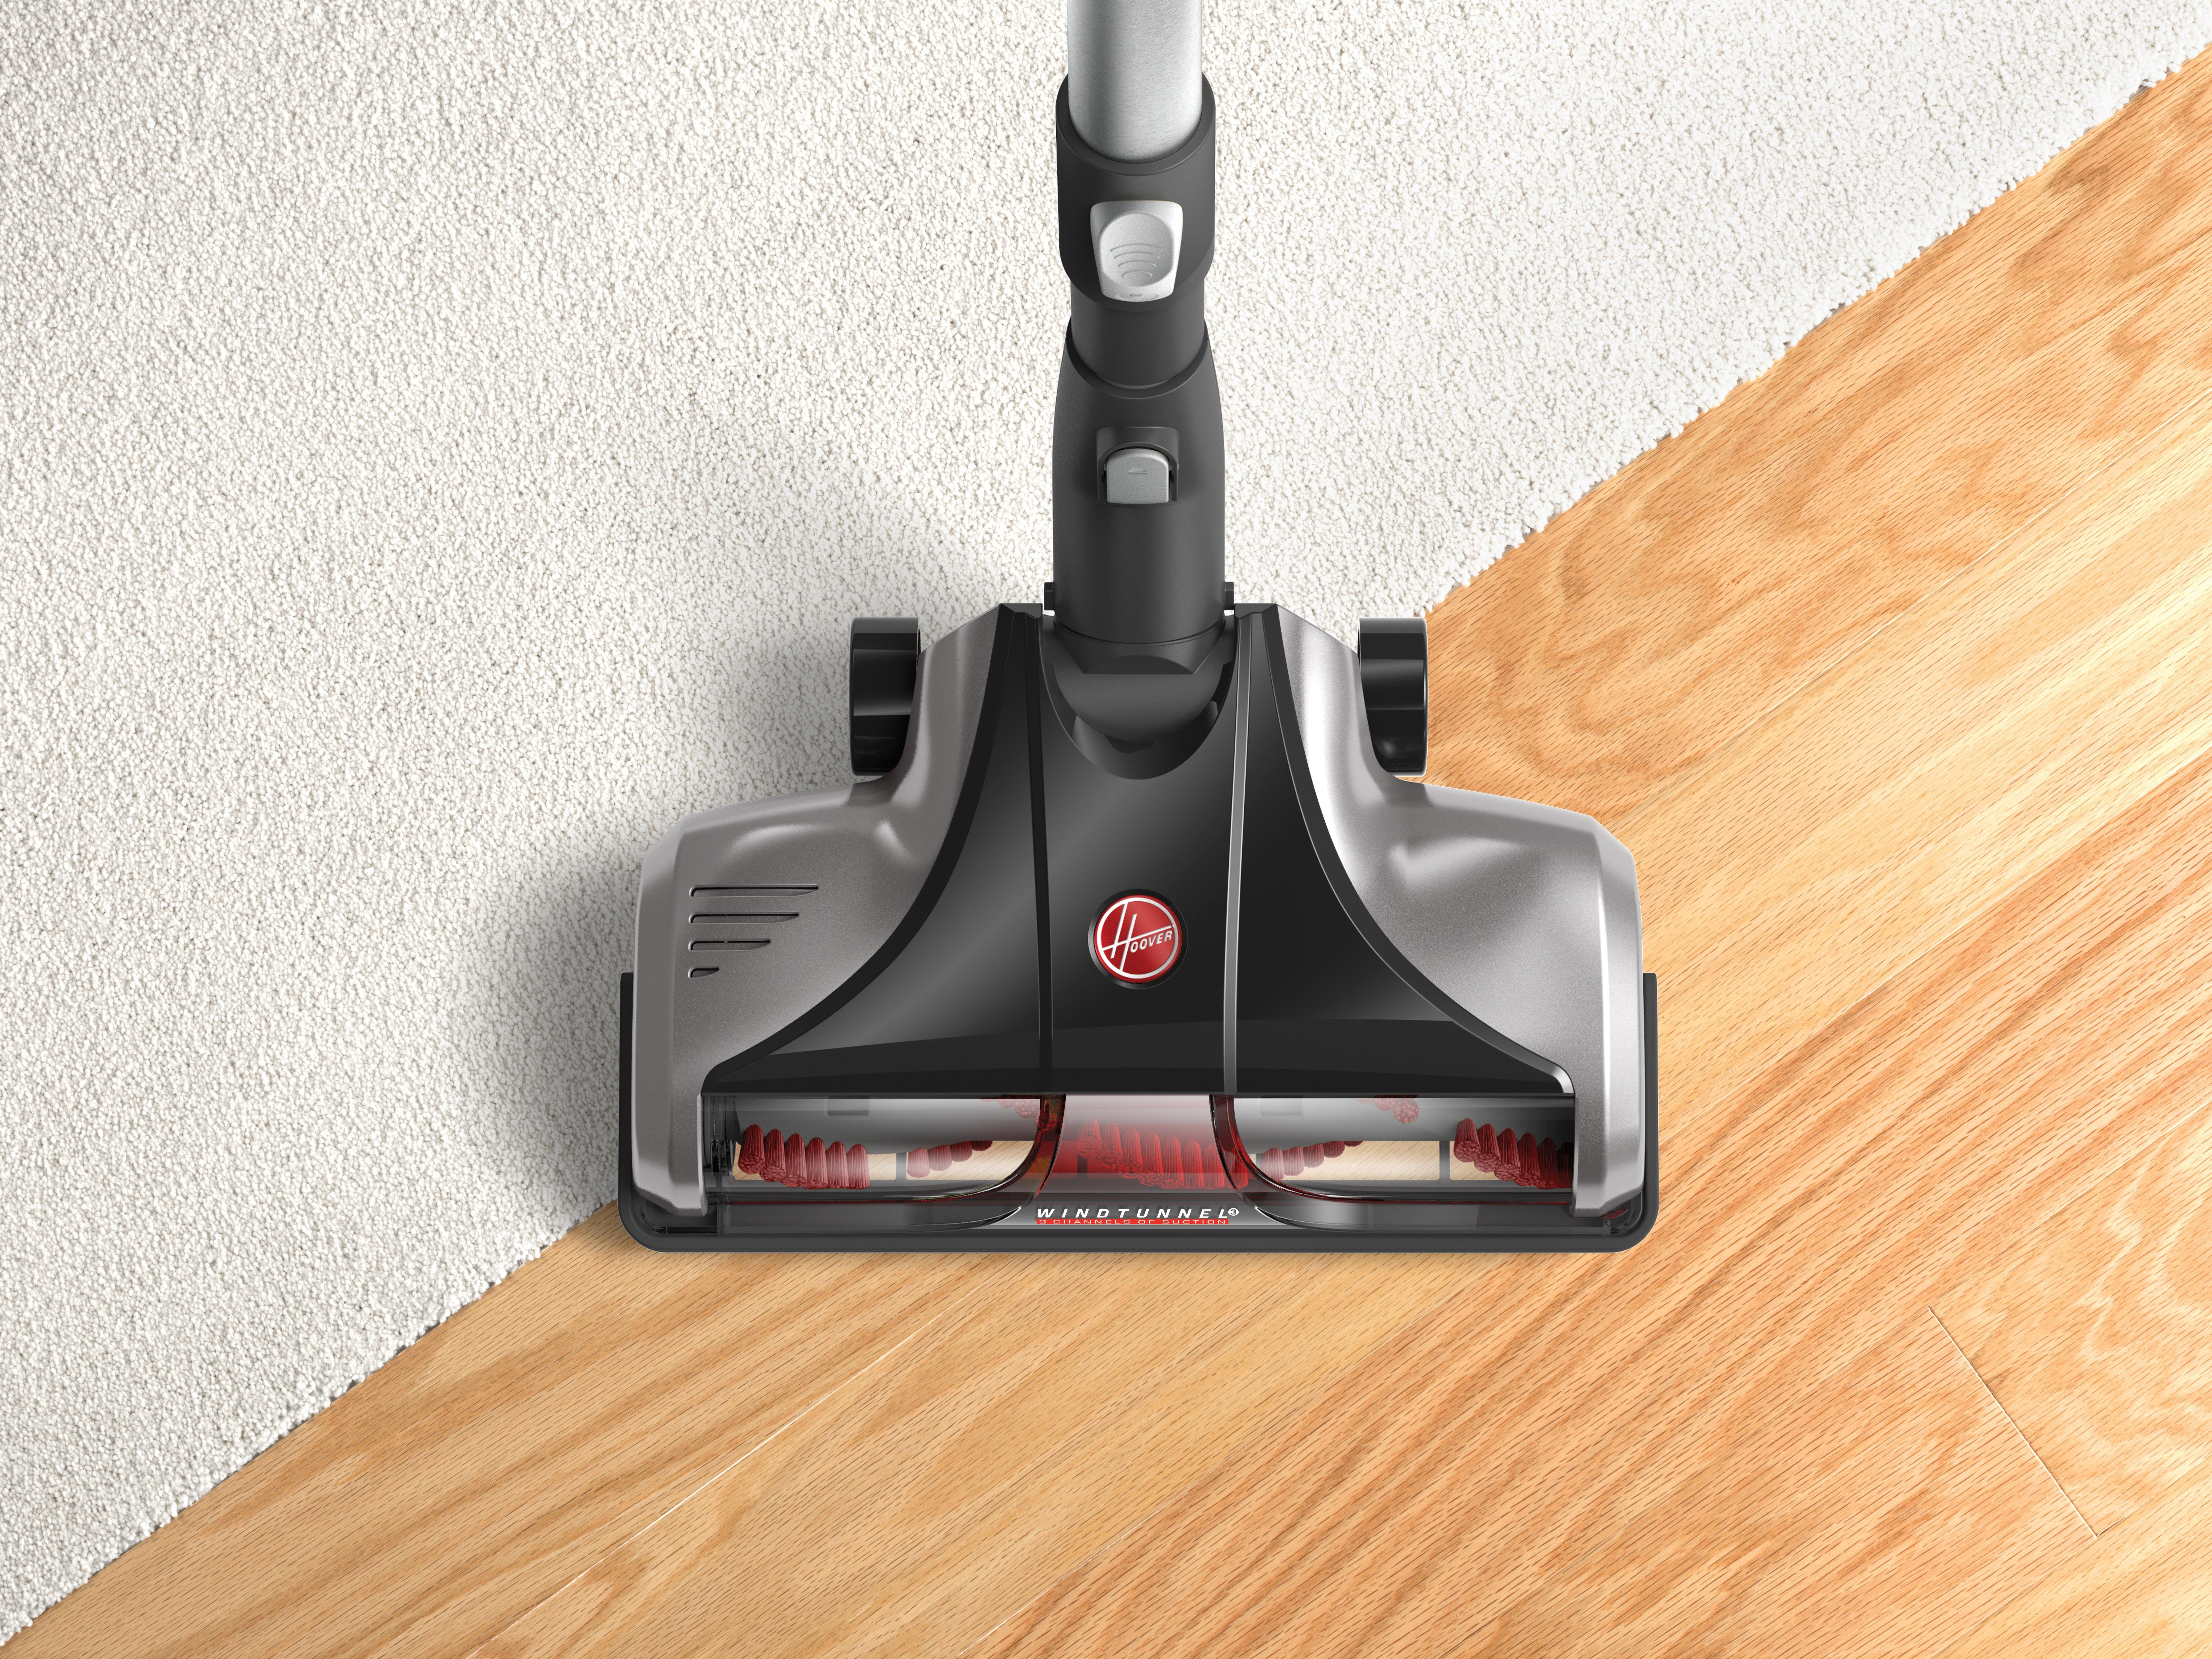 Quiet Force Bagged Canister Vacuum2